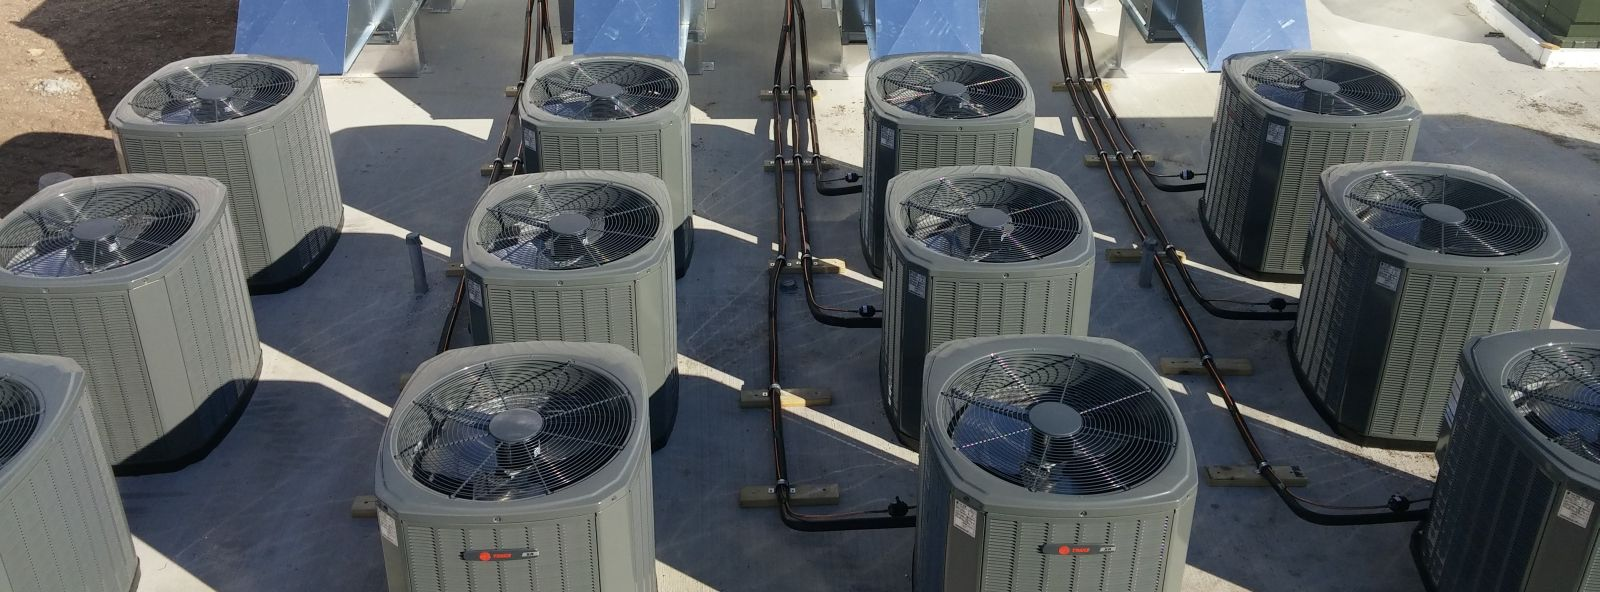 Commercial Air Conditioning Maintenance Fort Lauderdale FL